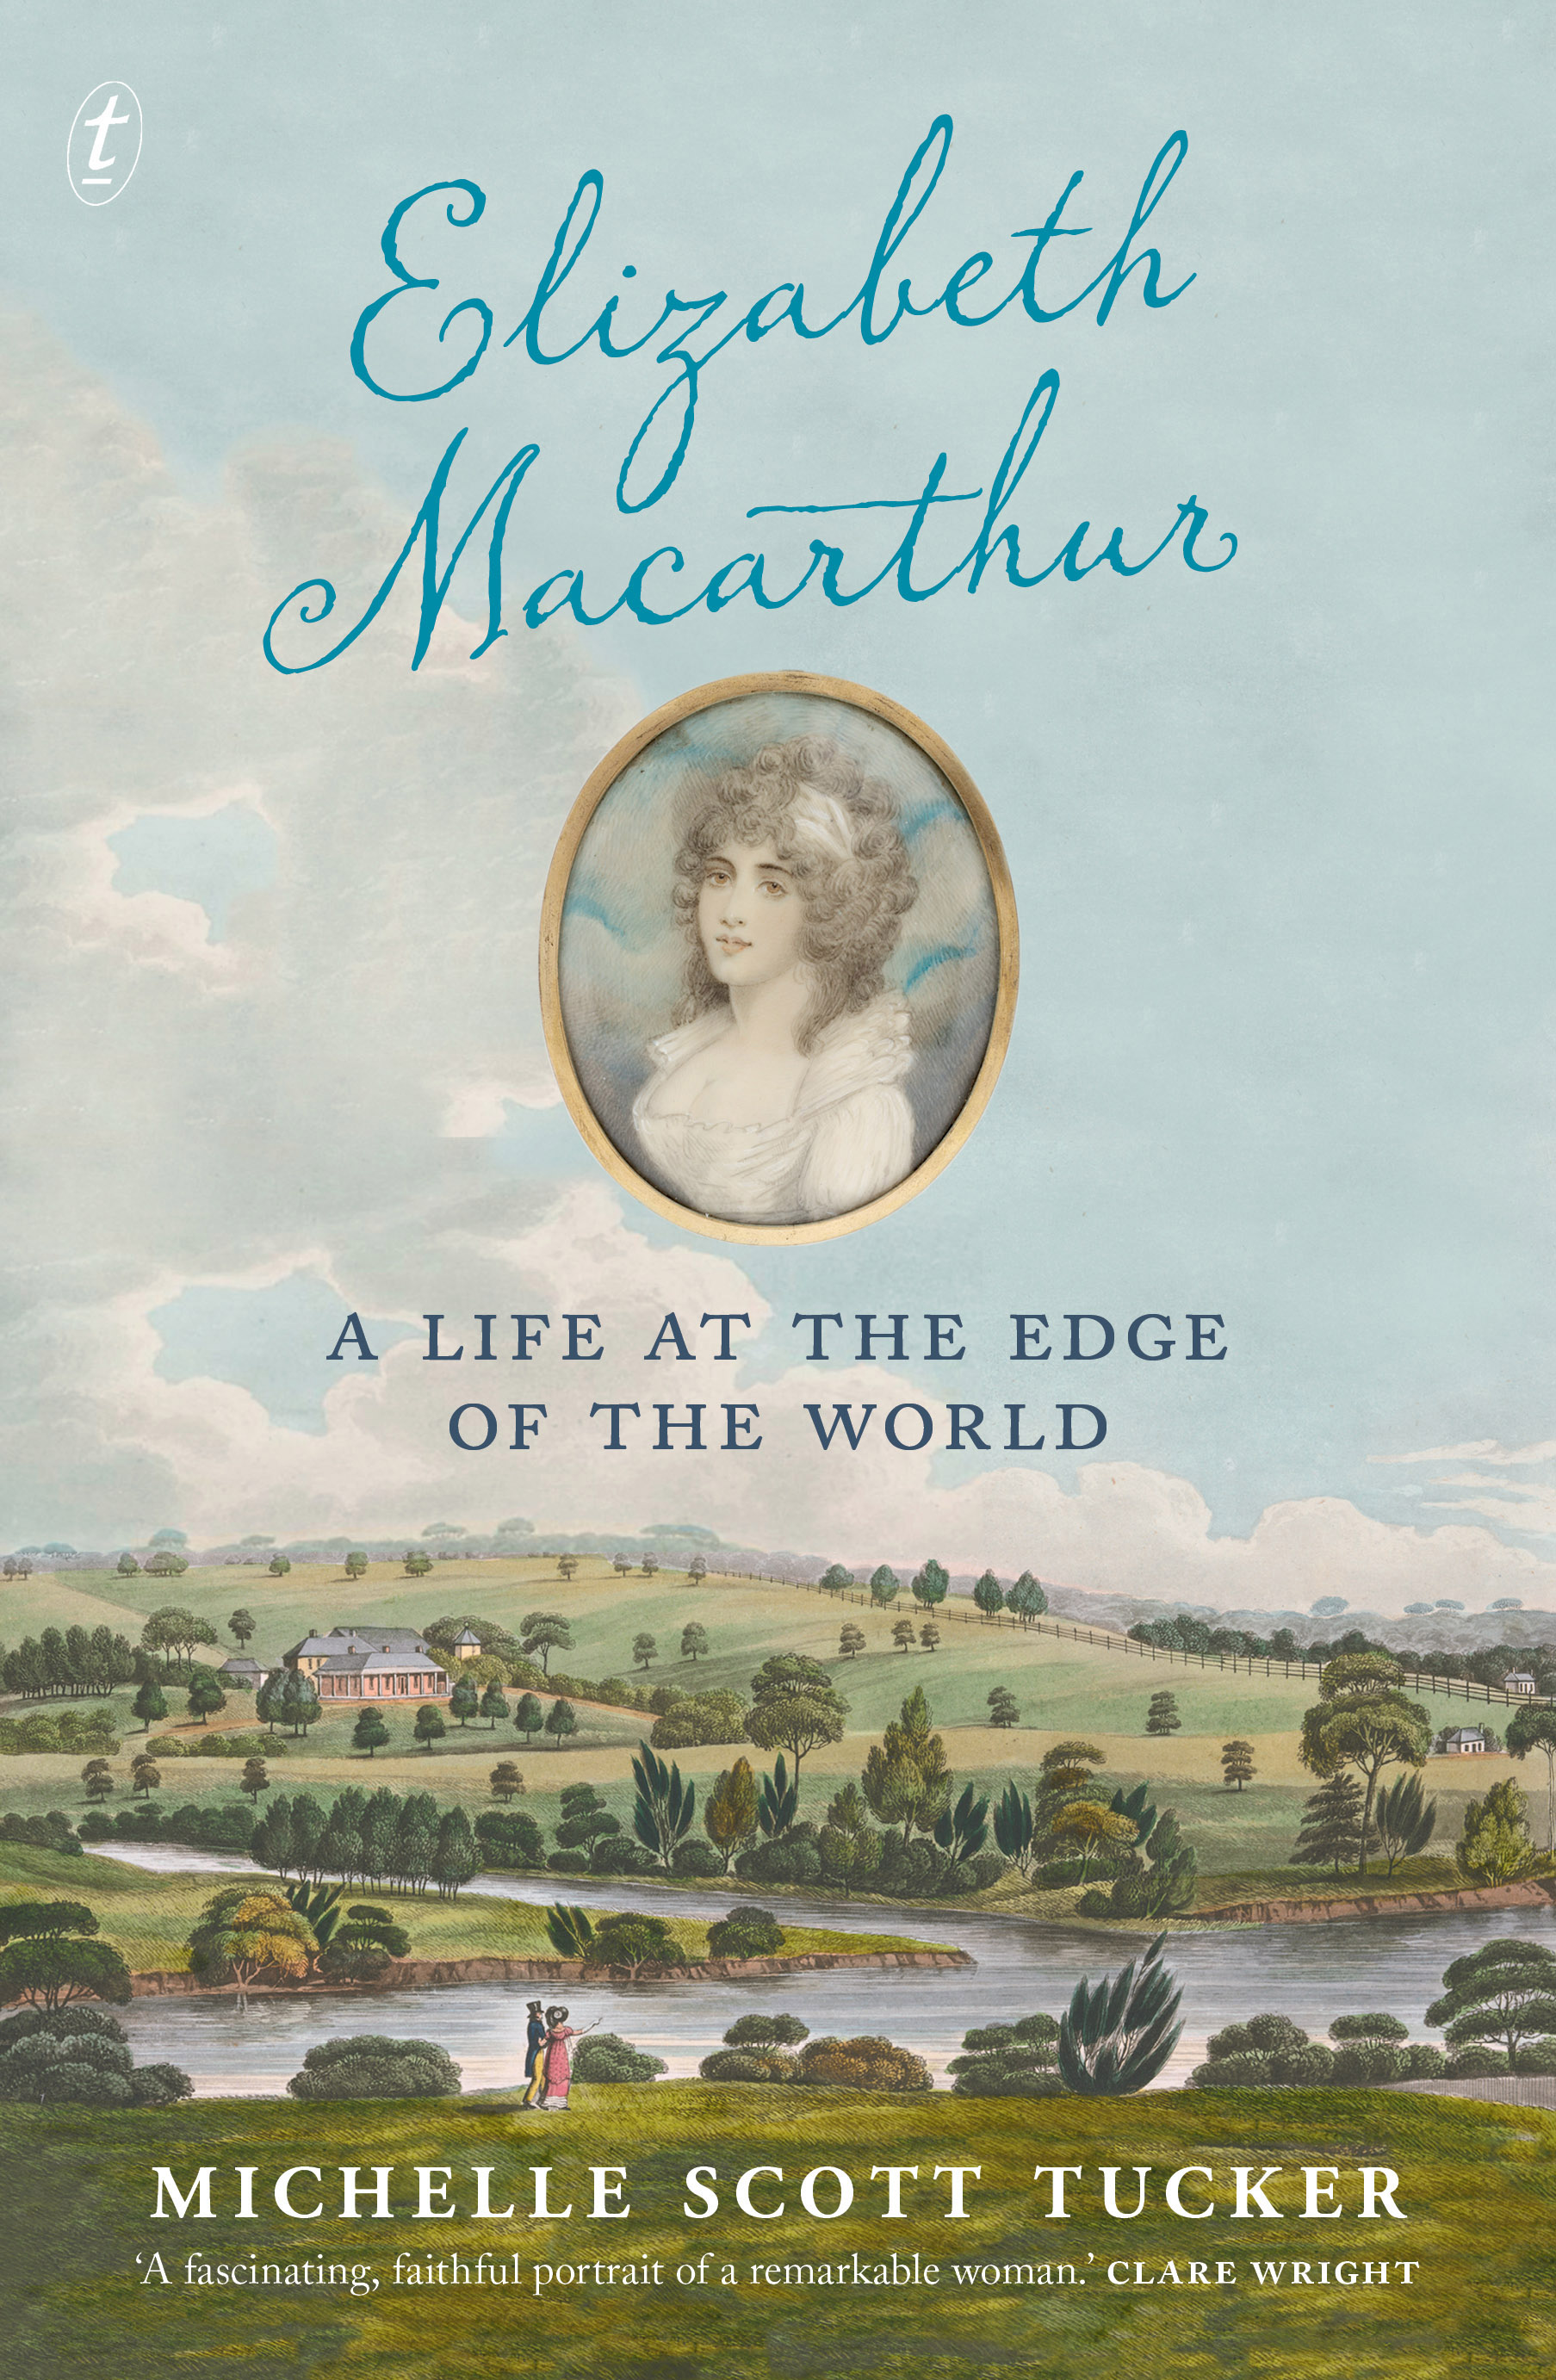 Cover image of the book 'Elizabeth MacArthur: A Life at the Edge of the World' by Michelle Scott Tucker